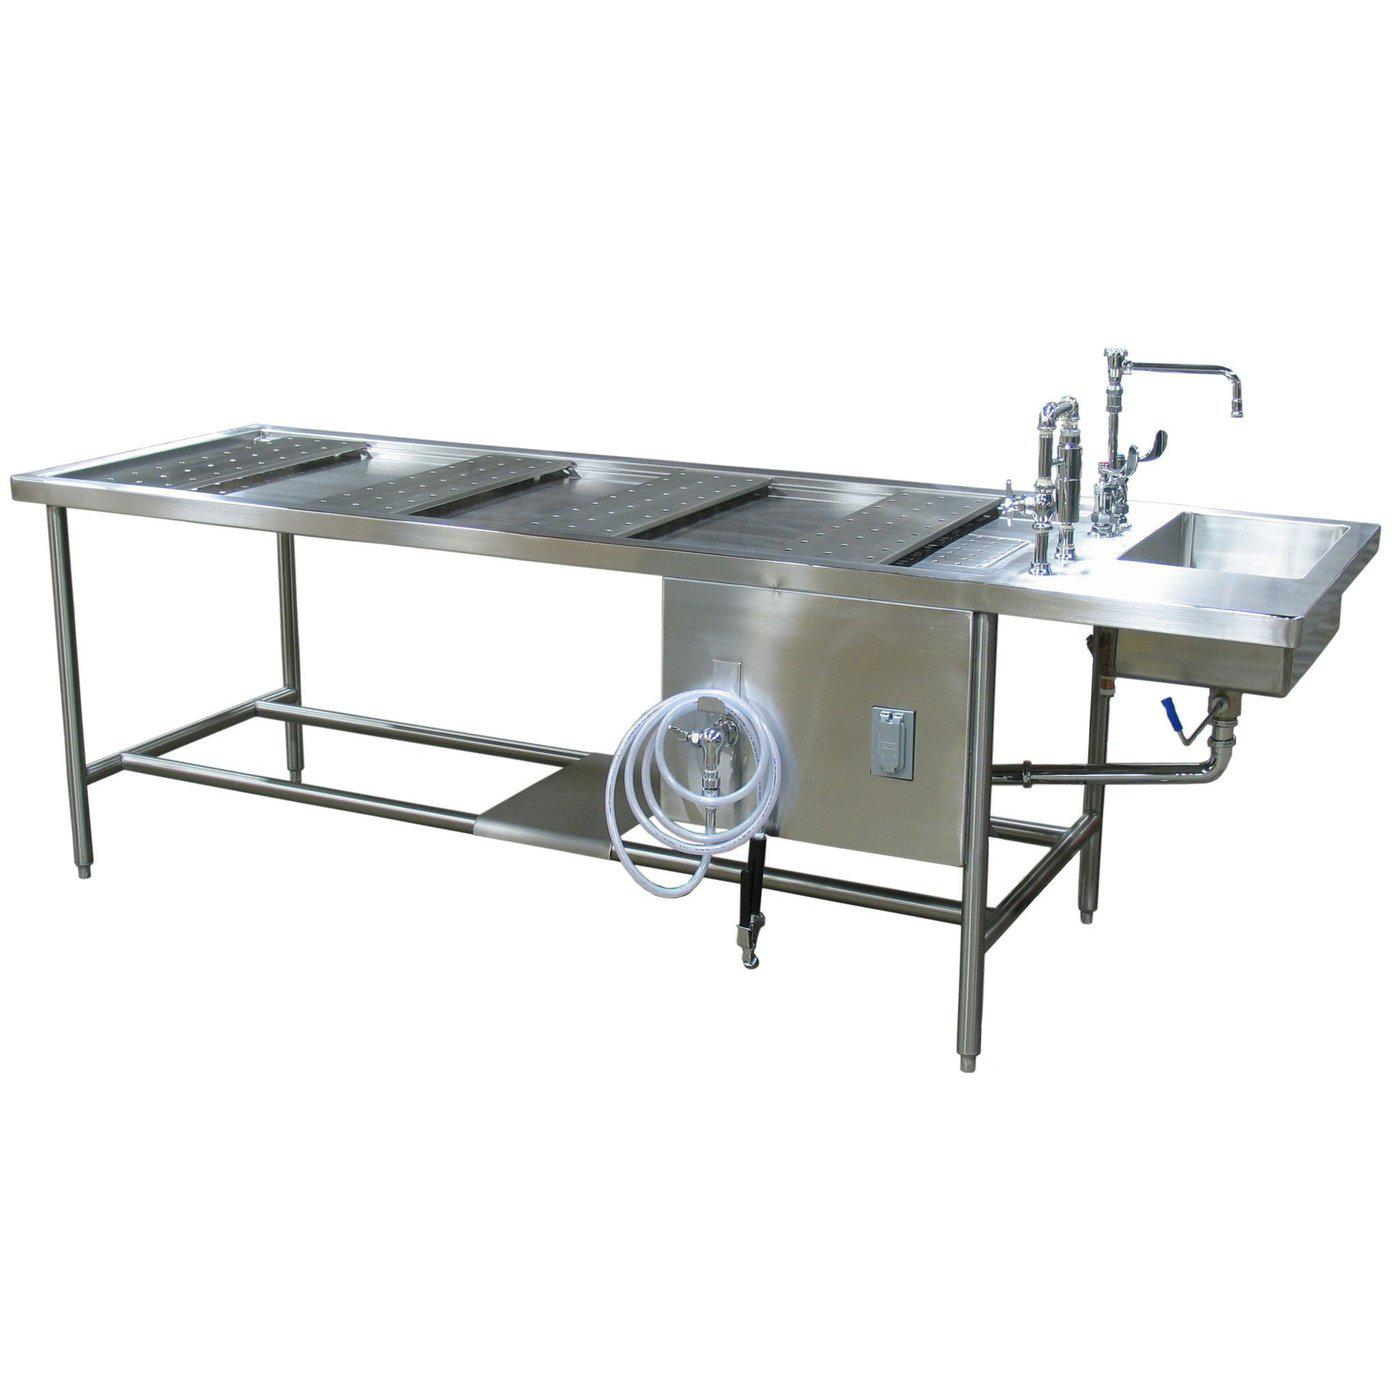 Medium image of standard autopsy table